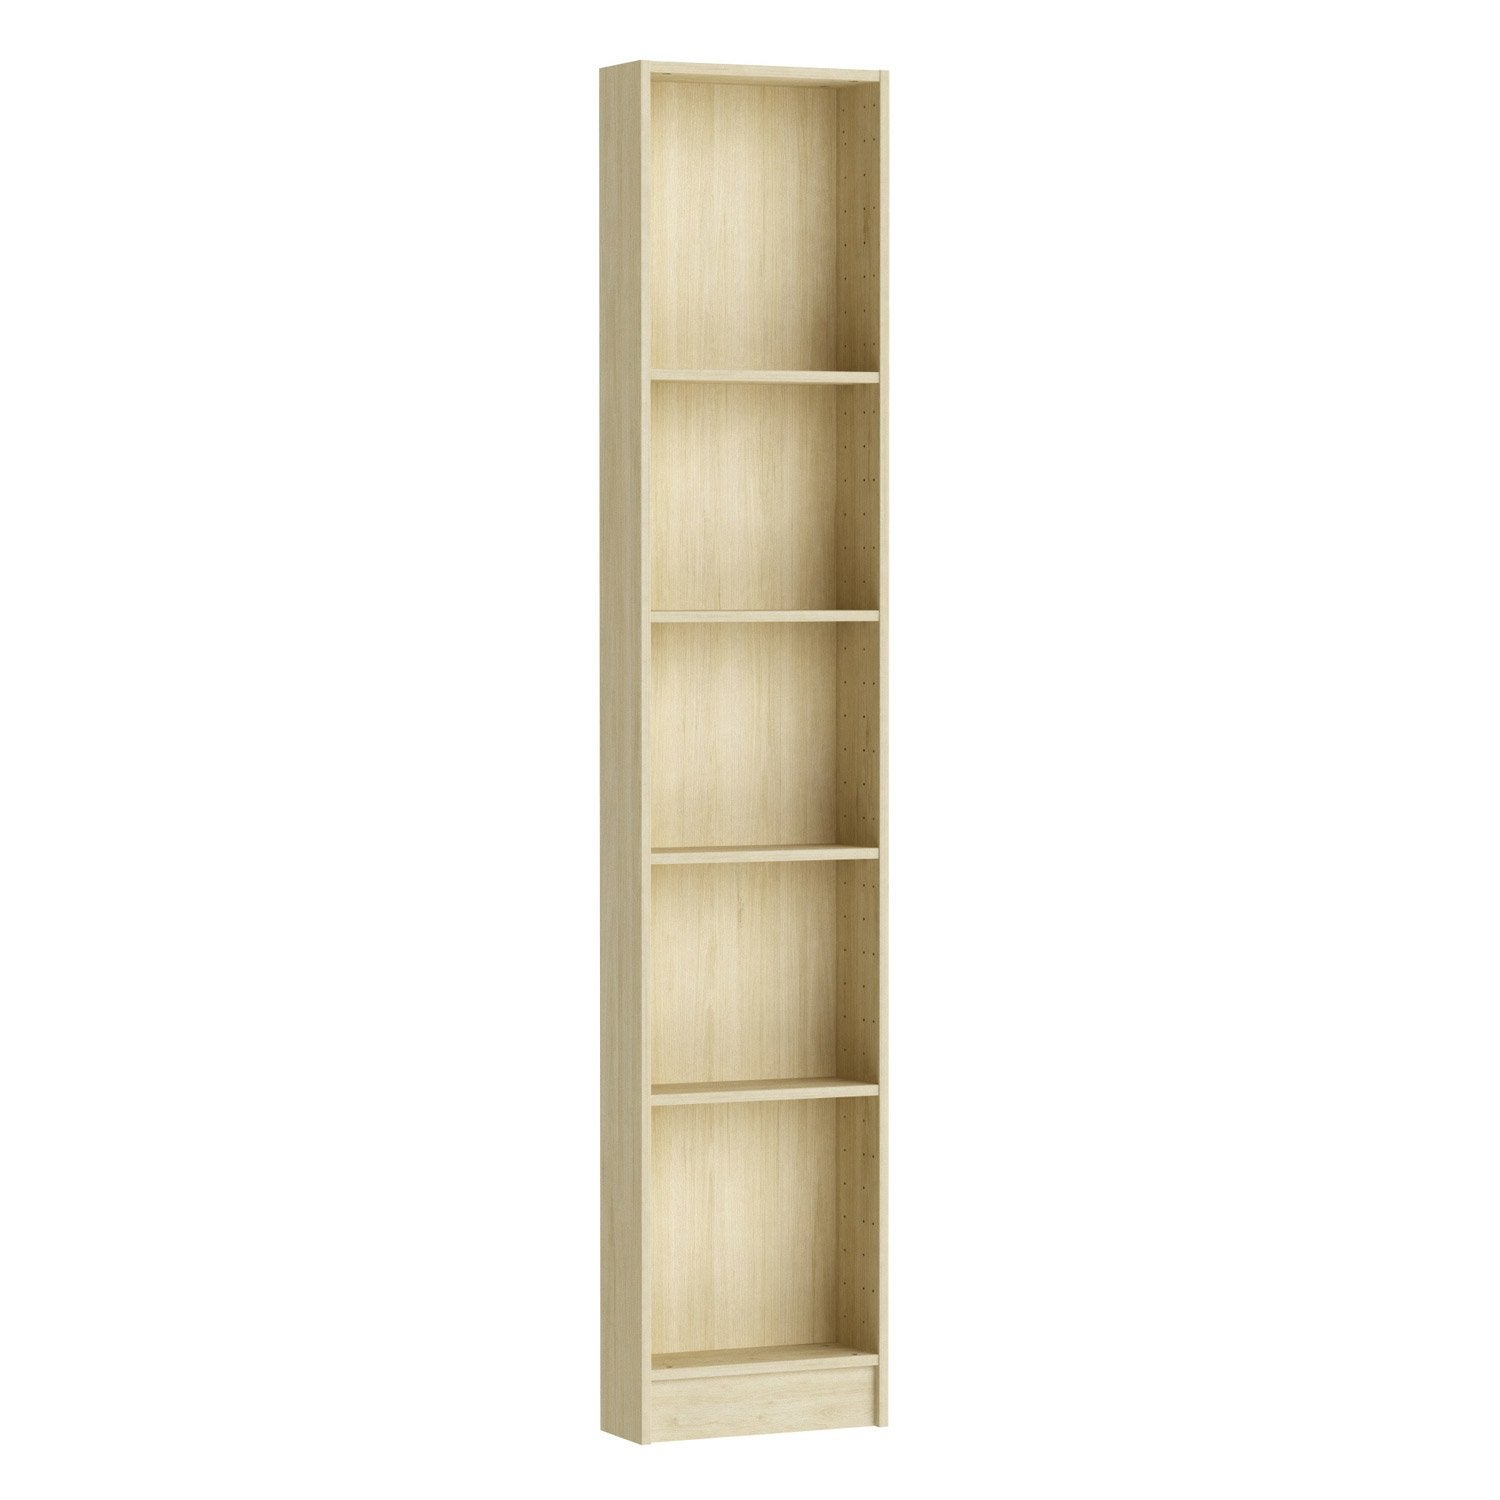 Caisson Spaceo Home 200 X 40 X 15 Cm Effet Chêne Naturel Leroy Merlin